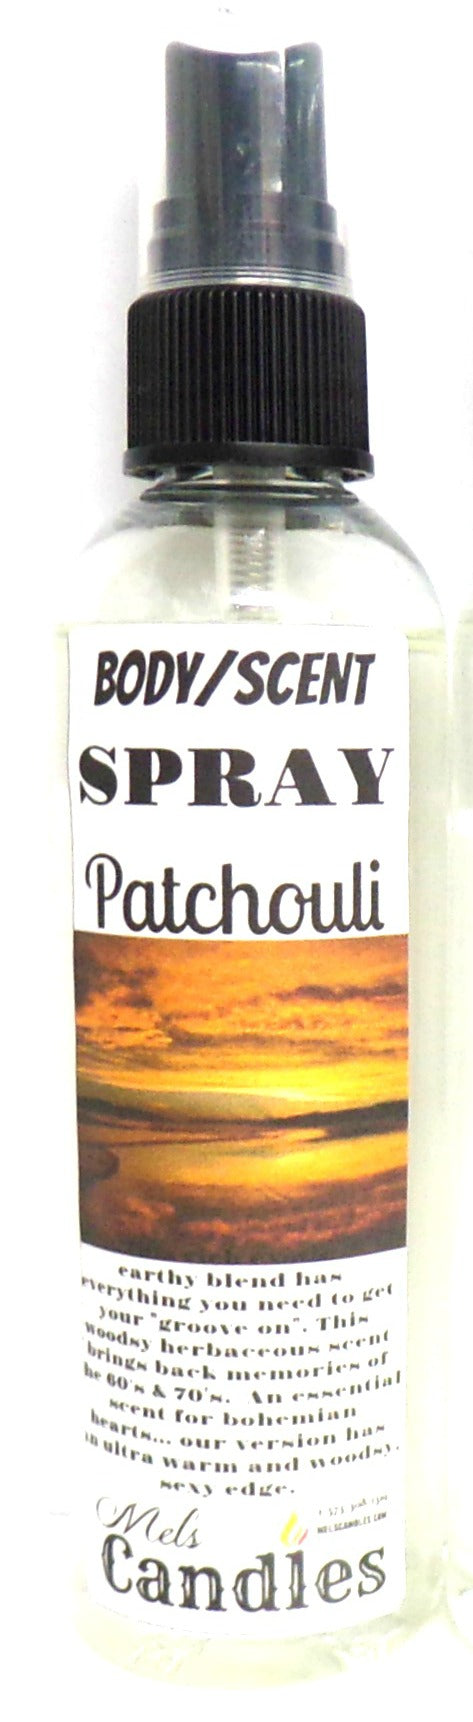 Patchouli 4 Ounce Bottle of Body Spray Scent Spray Room Spray